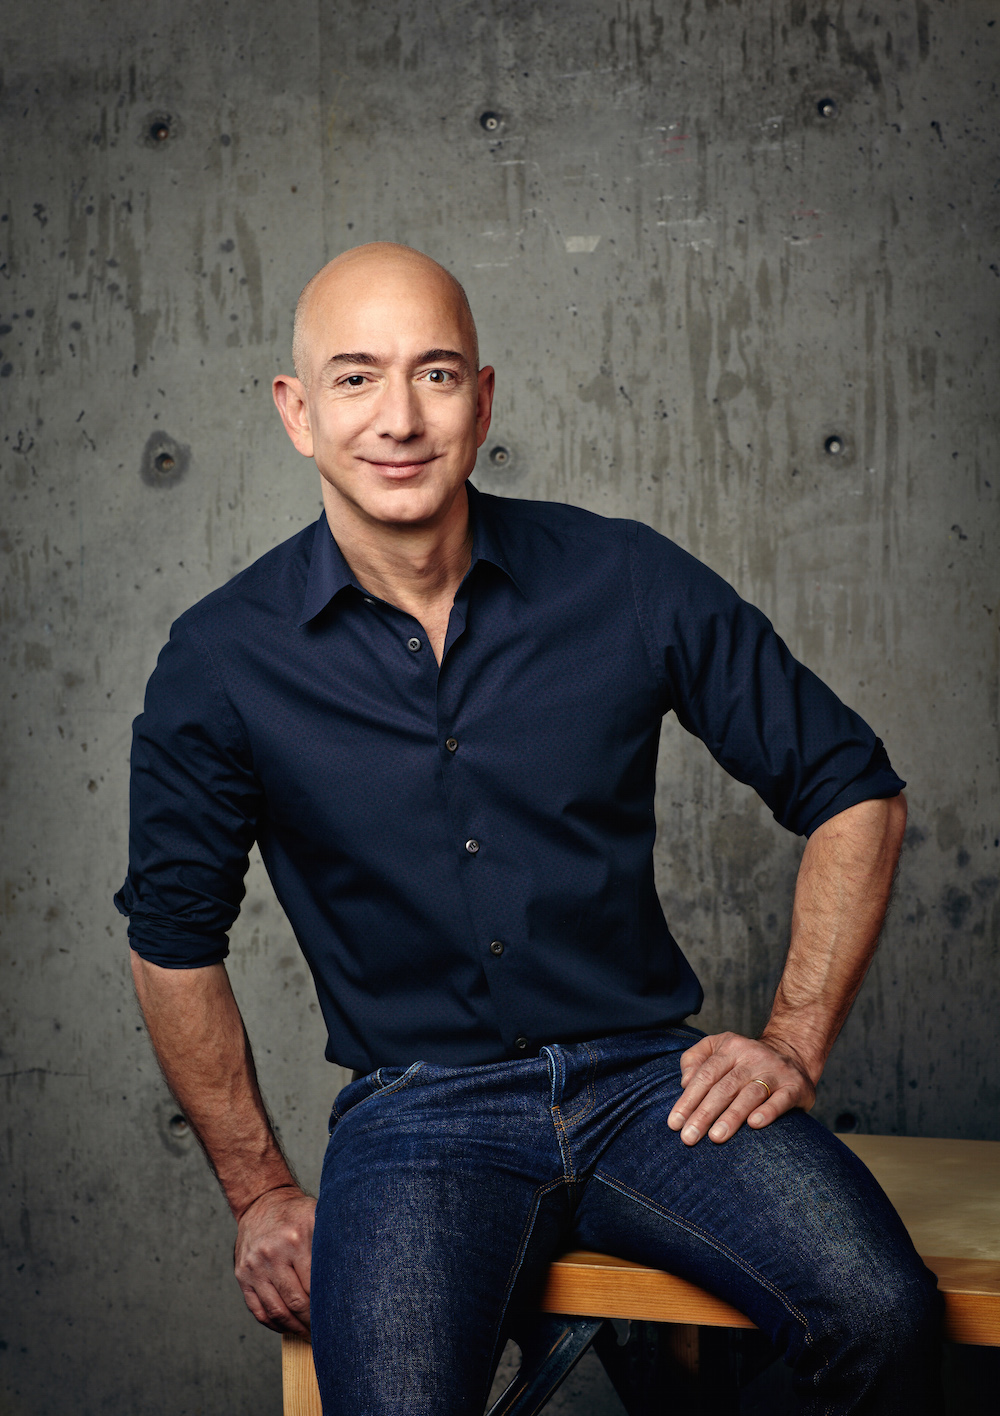 Jeff Bezos, CEO Amazon